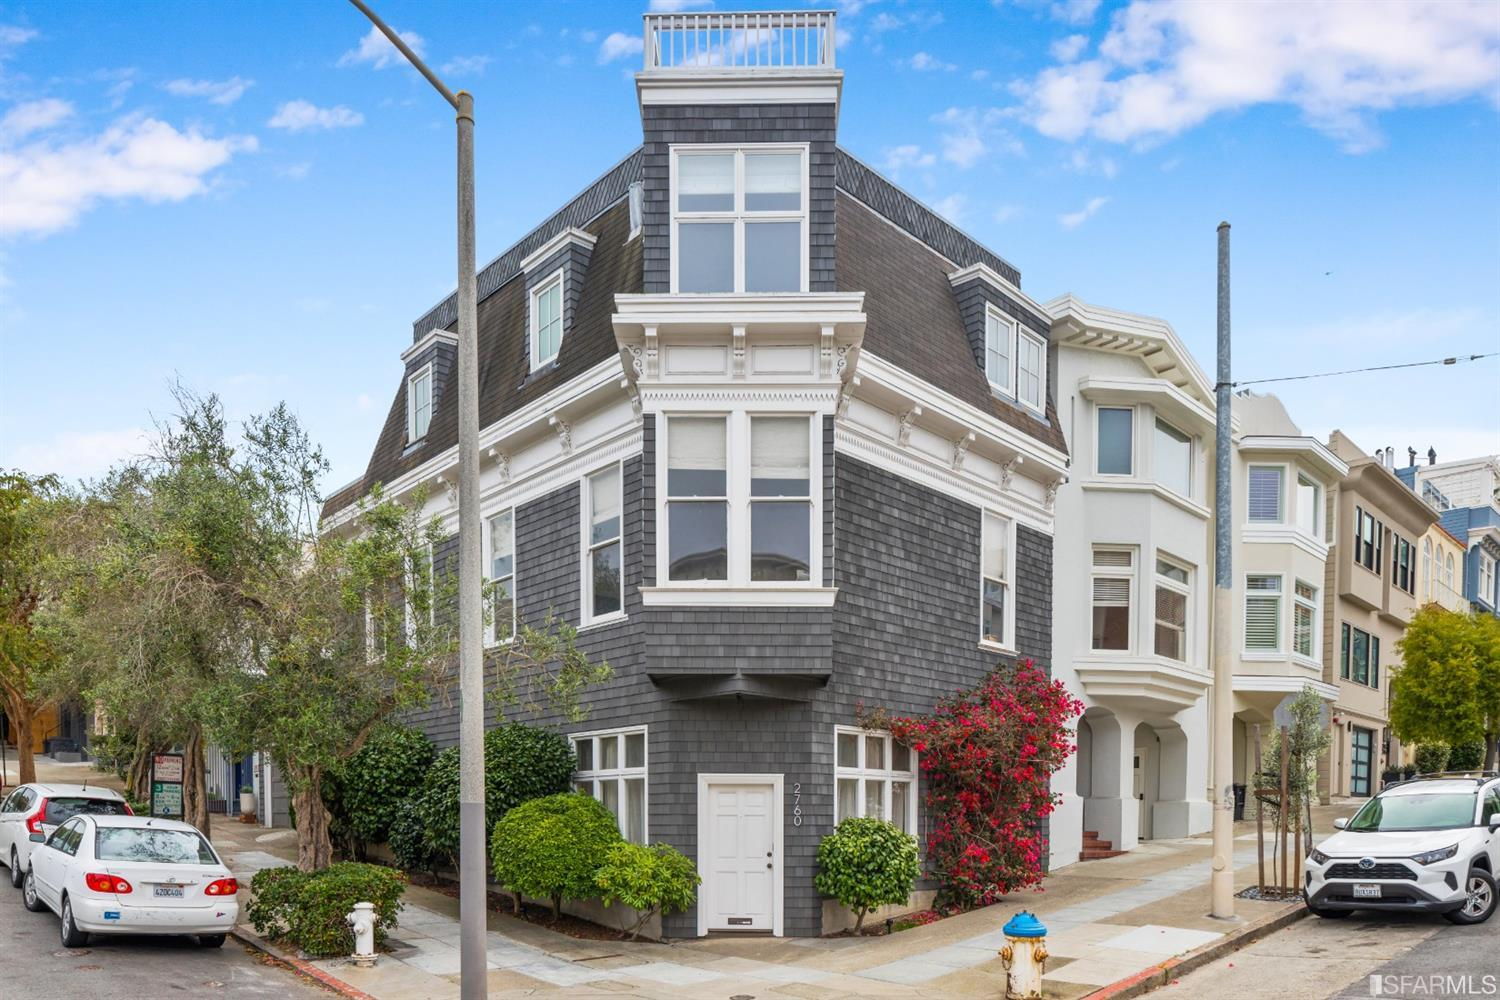 This Cow Hollow gem stands out like no other.   The perfect get-away retreat of your very own.  It is ideally located just one block from the Presidio, one from Union St.  If you are a lifestyle buyer, you can end your search.  You cannot help but covet the community's cafes, eclectic eateries, and access to one of the nation's most unique urban greenspaces, but this home is about much more than location. This is a home that visitors won't need an app to find: It's the one on the corner, you'll see the front door''.  The ideal space for an active professional awaits: there's an office, in-unit laundry, comfortable primary suite, and a full, vibrant and modern kitchen. Everything is up-to-date, where it should be, and ready to move right in.